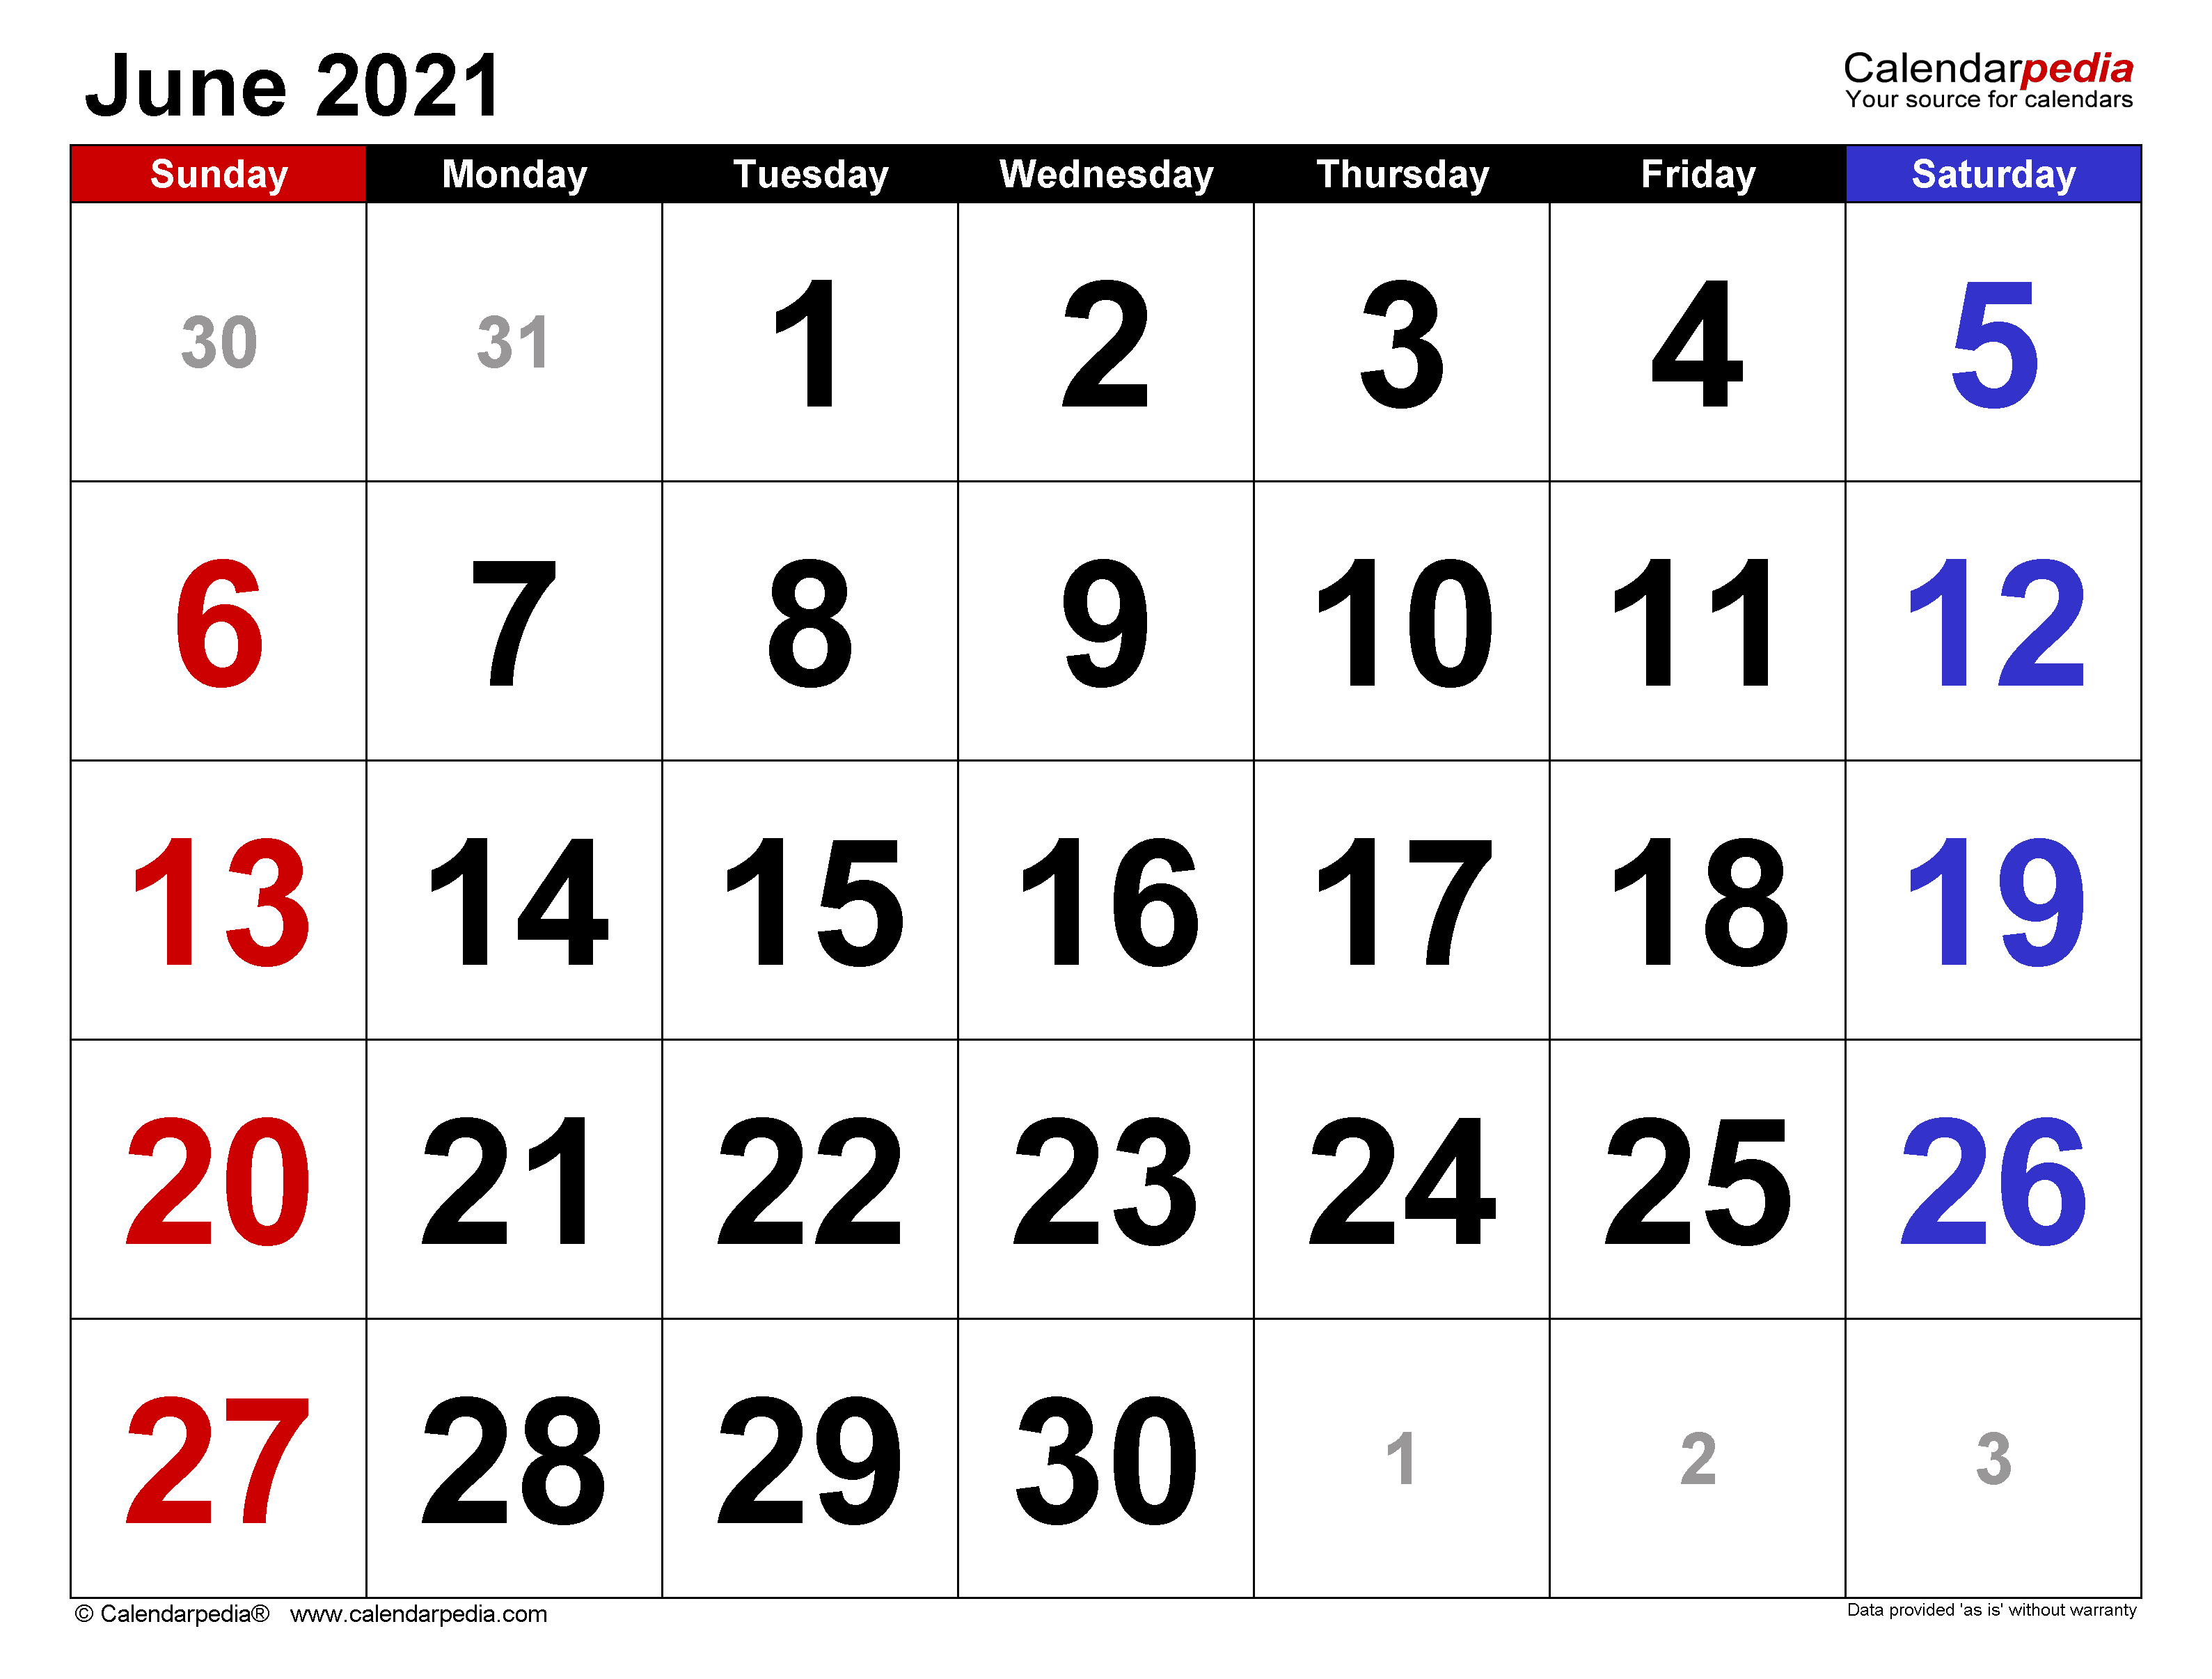 June 2021 Calendar | Templates For Word, Excel And Pdf